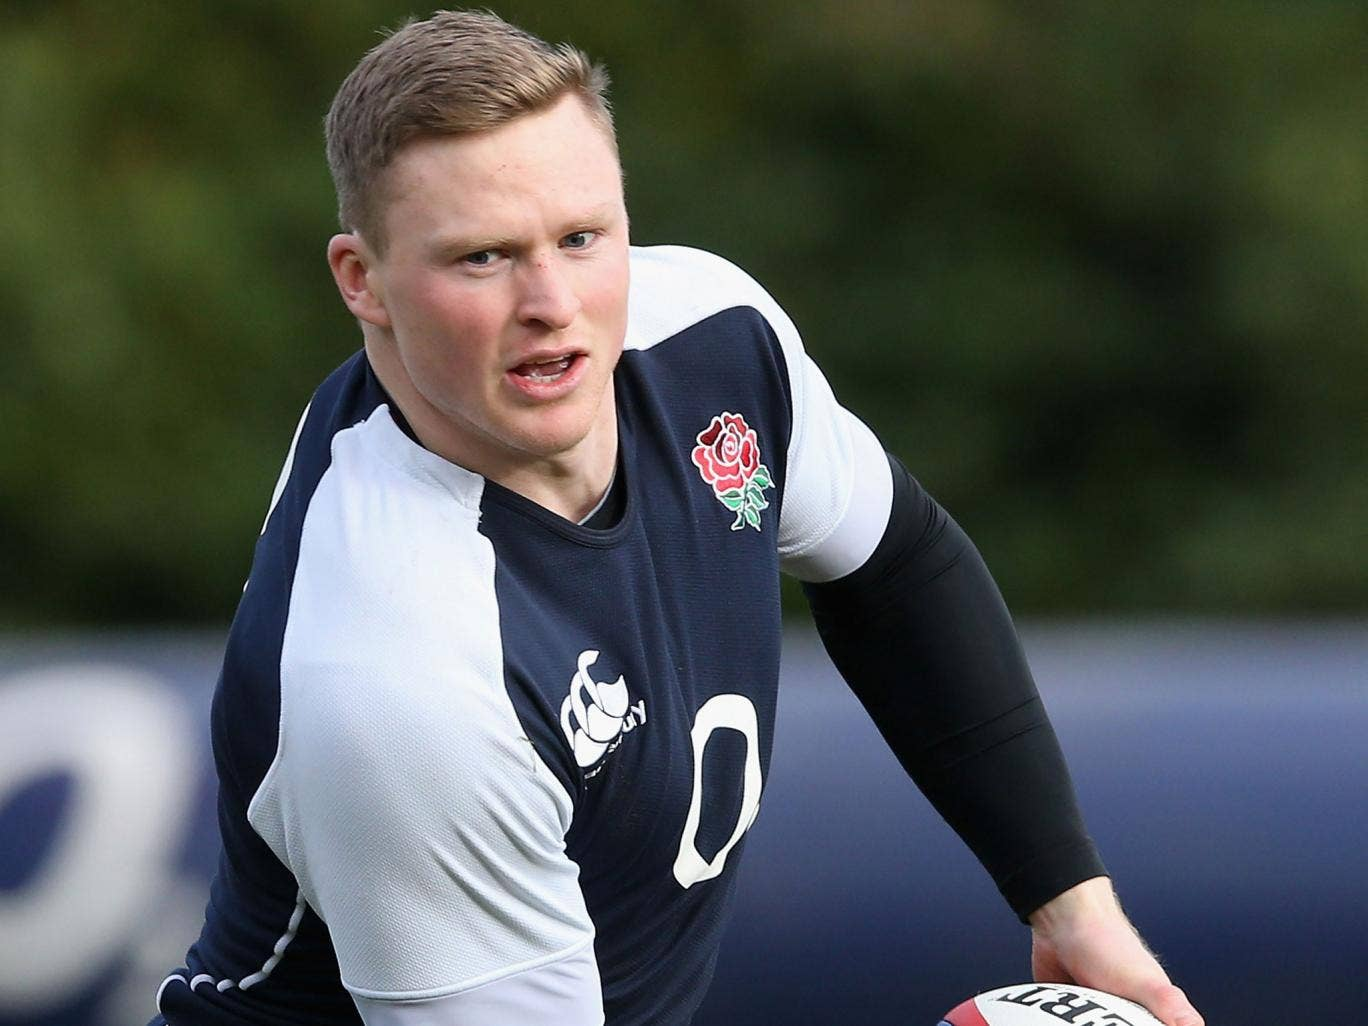 Chris Ashton: Was heard to say that he 'does not even know what condescending means!'